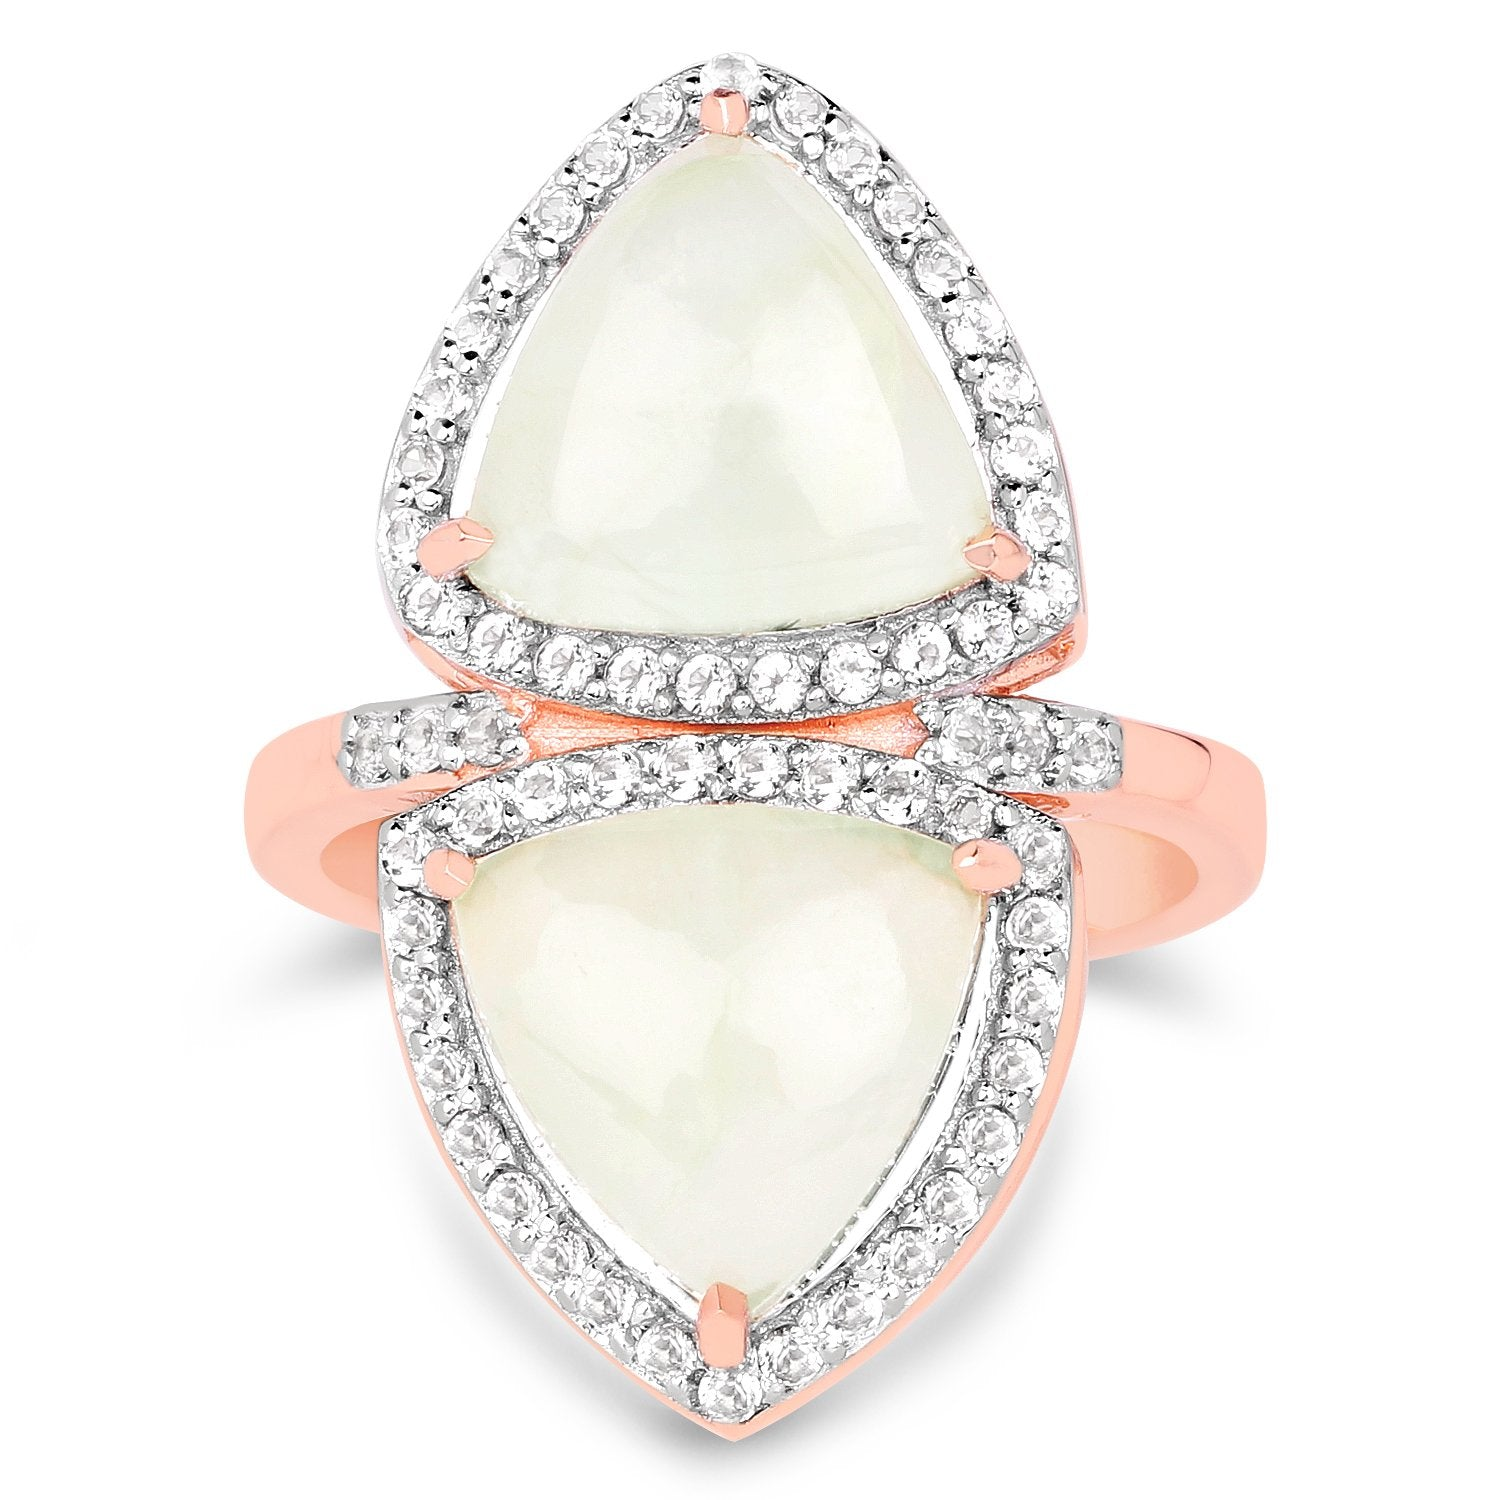 LoveHuang 6.82 Carats Genuine Prehnite and White Topaz Mirror Ring Solid .925 Sterling Silver With 18KT Rose Gold Plating